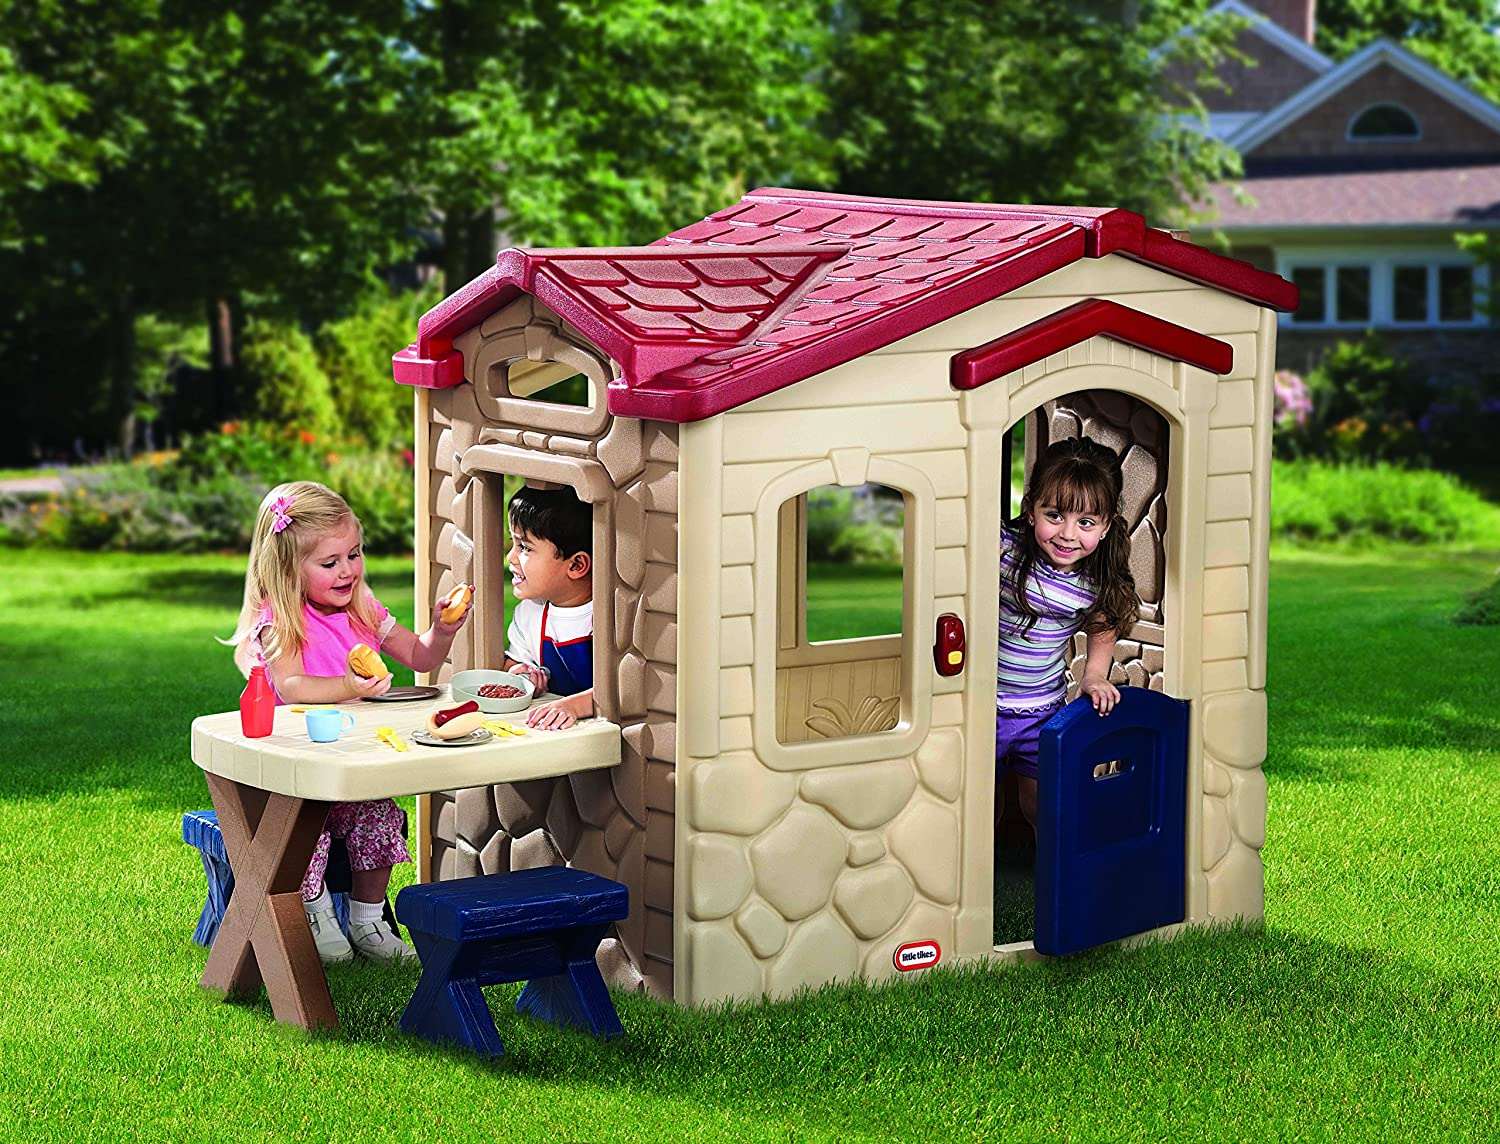 Top 6 Best Kids Outdoor Playhouse Reviews in 2020 1